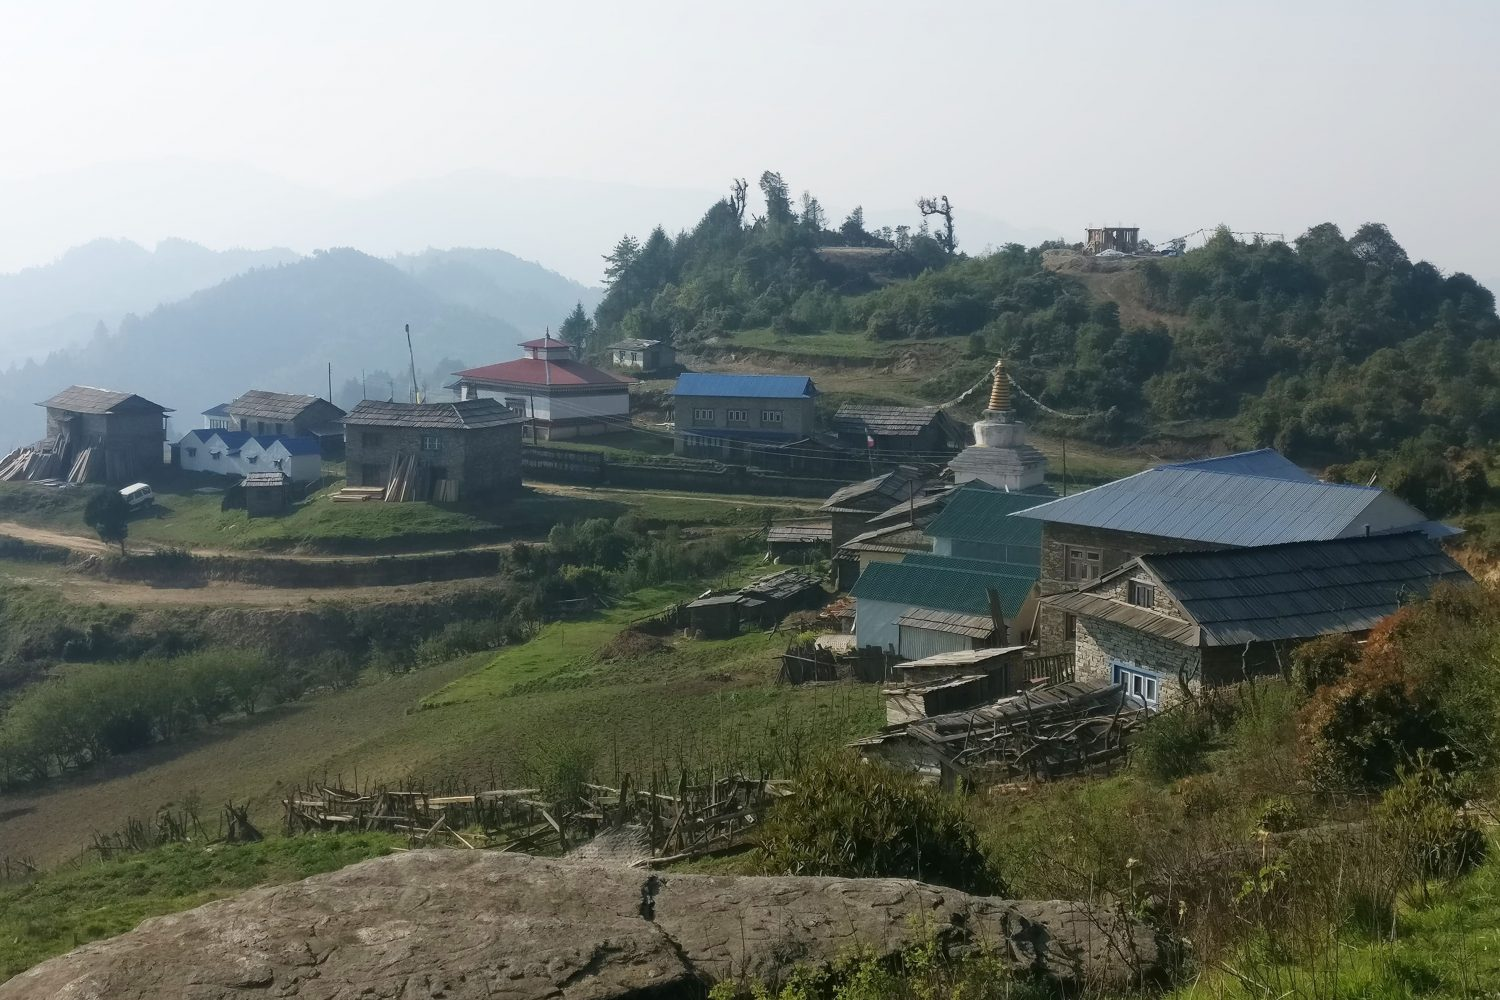 Jhyapre, the starting point of the Pikey Trek